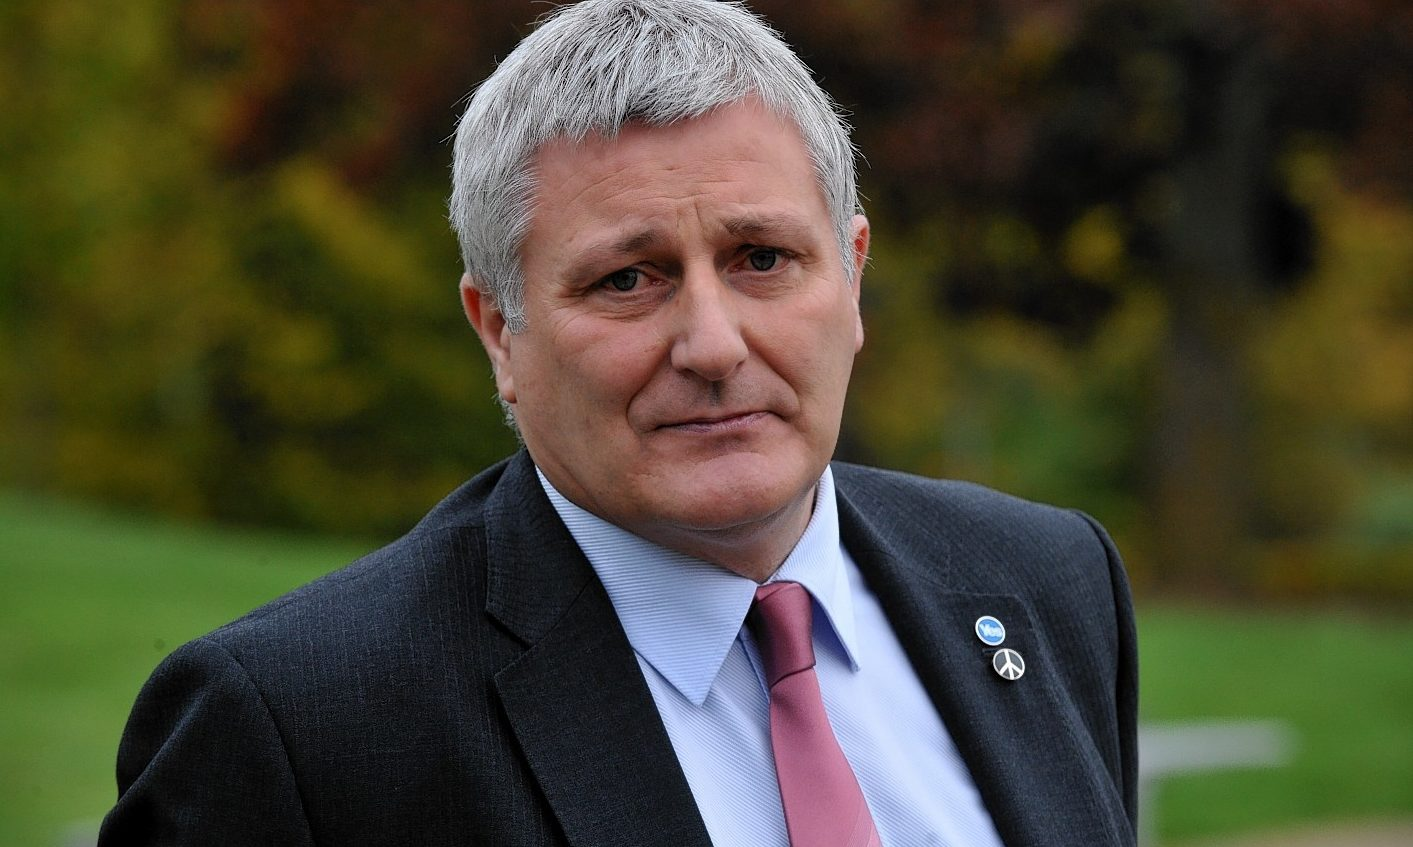 John Finnie MSP